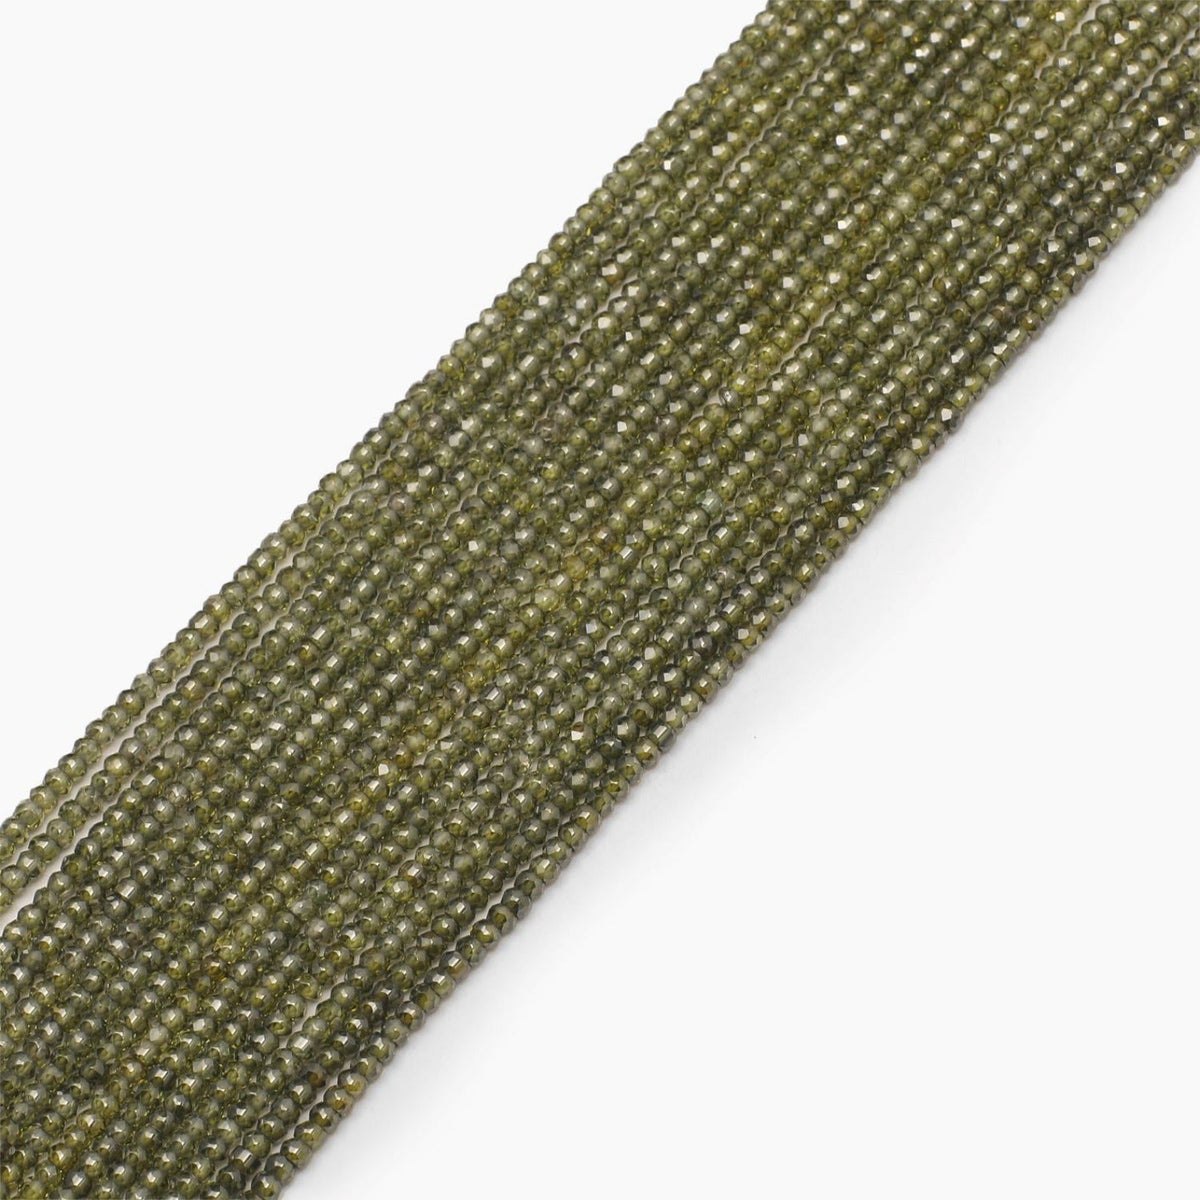 Light Olive Faceted Cubic Zirconia Beads- Sold Per Strand